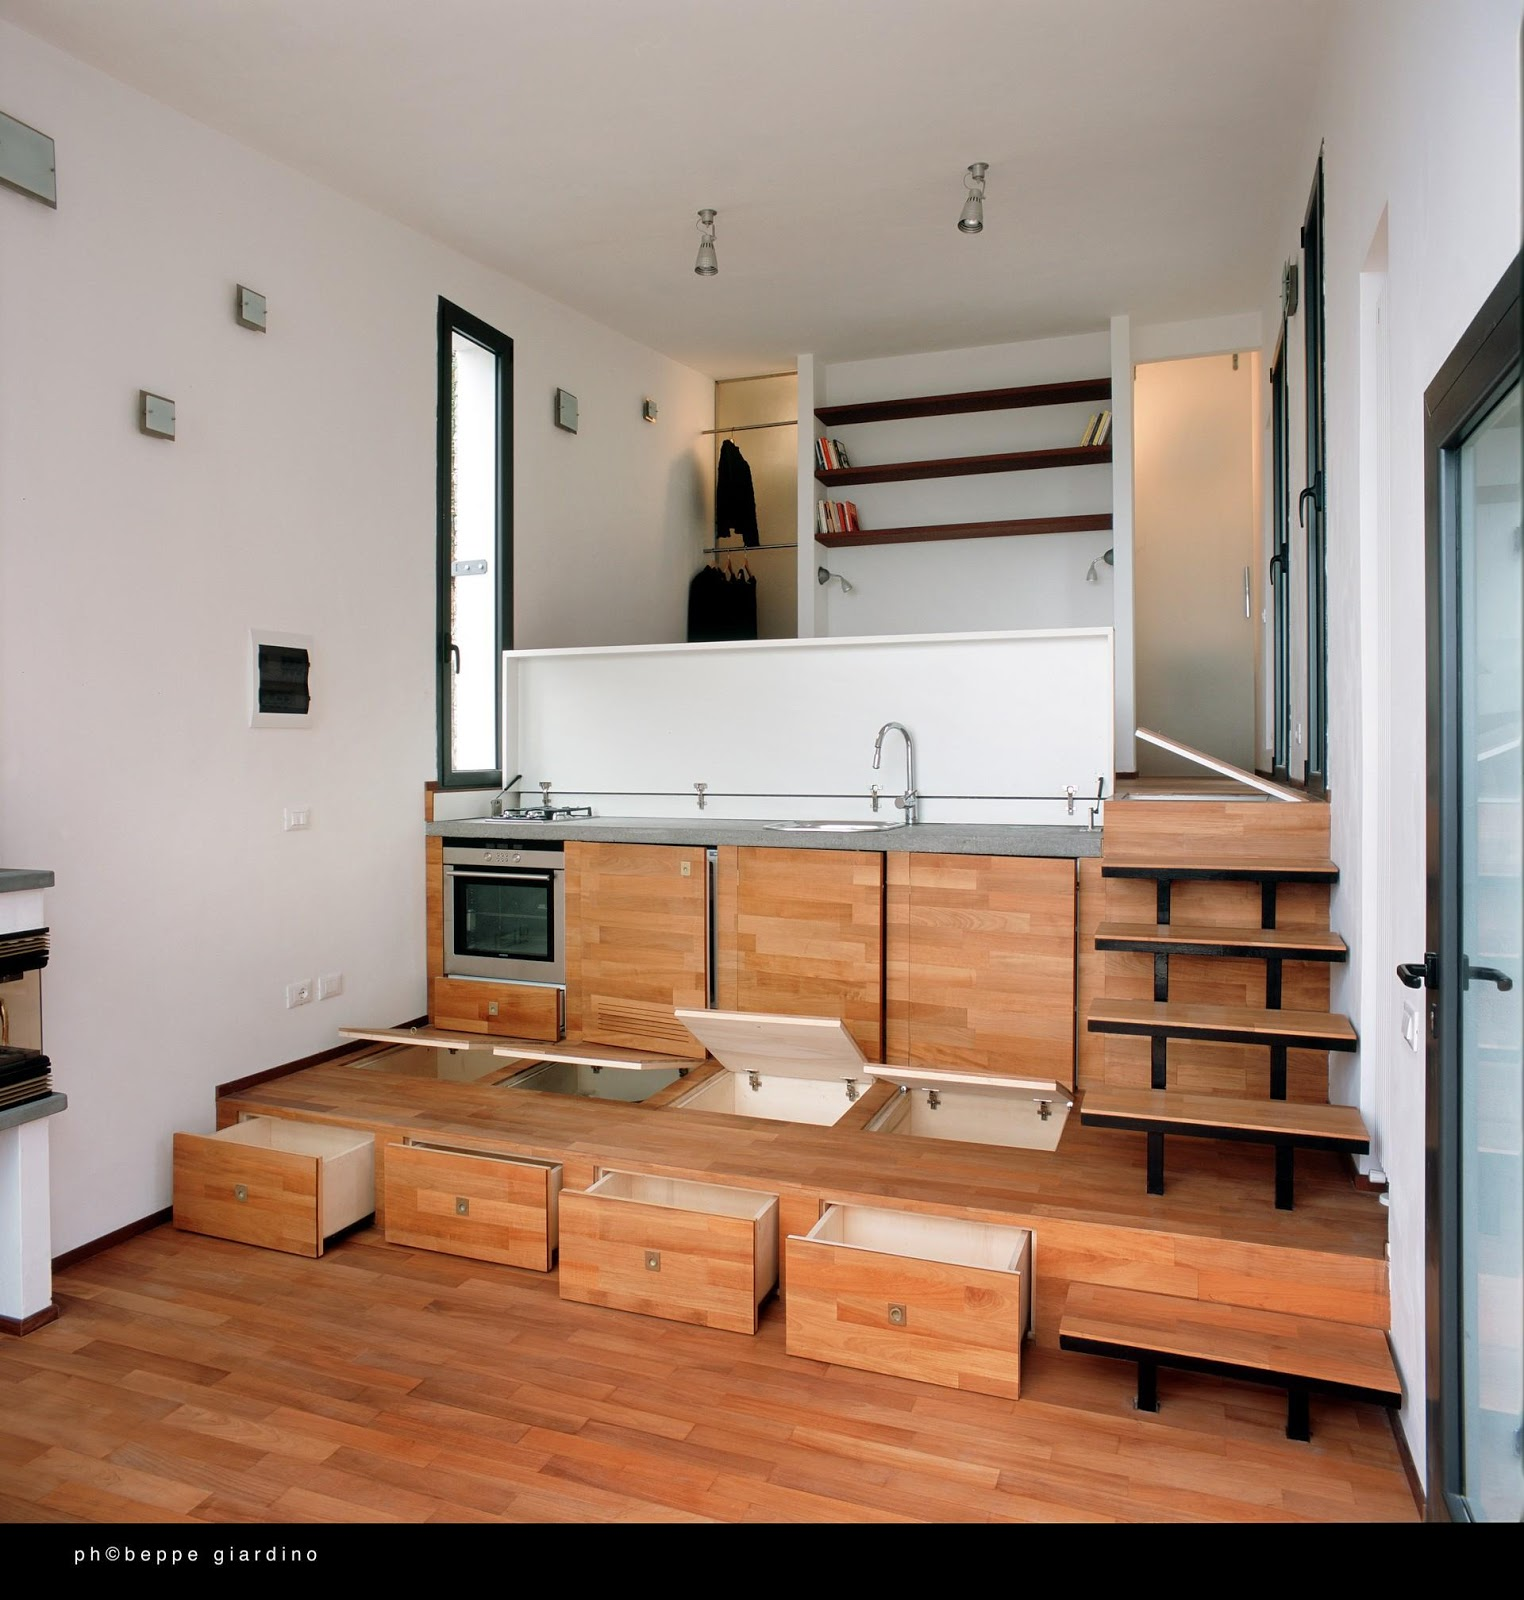 10 Small House Interior Design Solutions: TINY HOUSE TOWN: Tiny Italian Villa